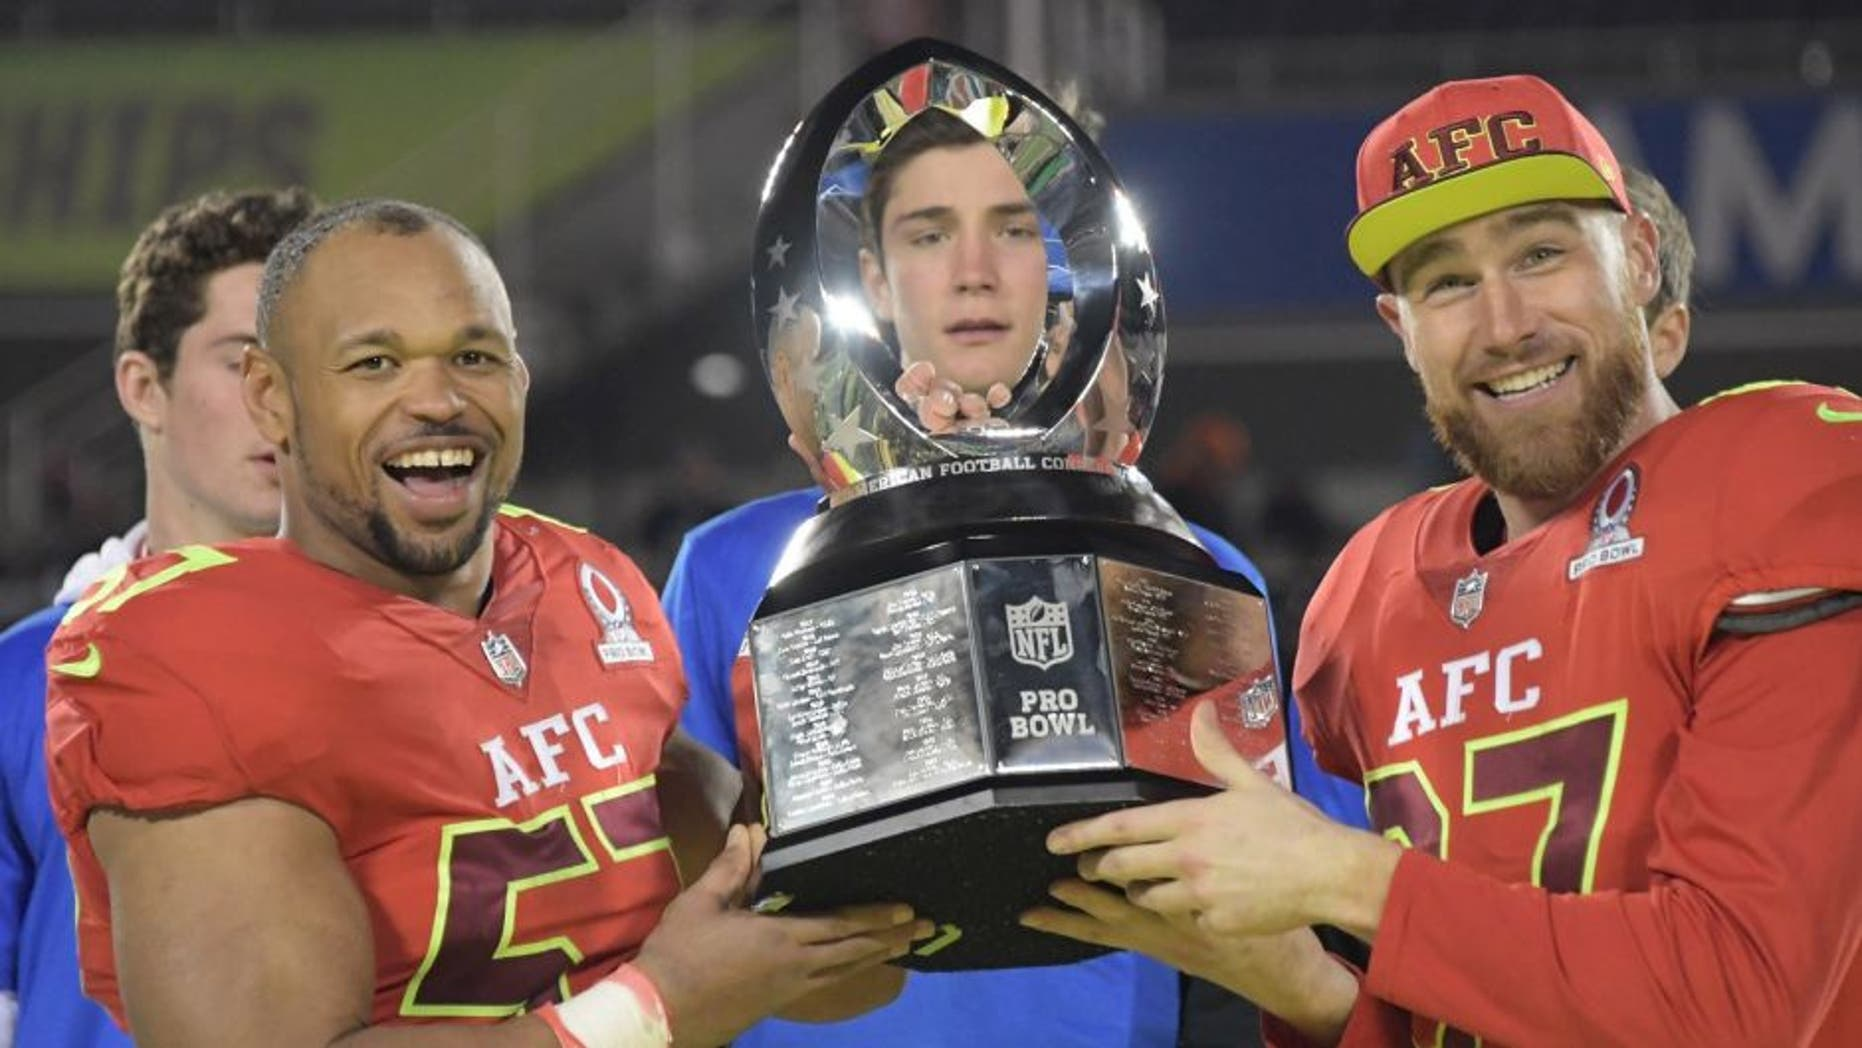 Jan 29, 2017; Orlando, FL, USA; AFC linebacker Lorenzo Alexander of the Buffalo Bills (57) and tight end Travis Kelce of the Kansas City Chiefs (87) hold the Pro Bowl trophy after the 2017 Pro Bowl at Camping World Stadium. The AFC defeated the NFC 20-13. Mandatory Credit: Kirby Lee-USA TODAY Sports